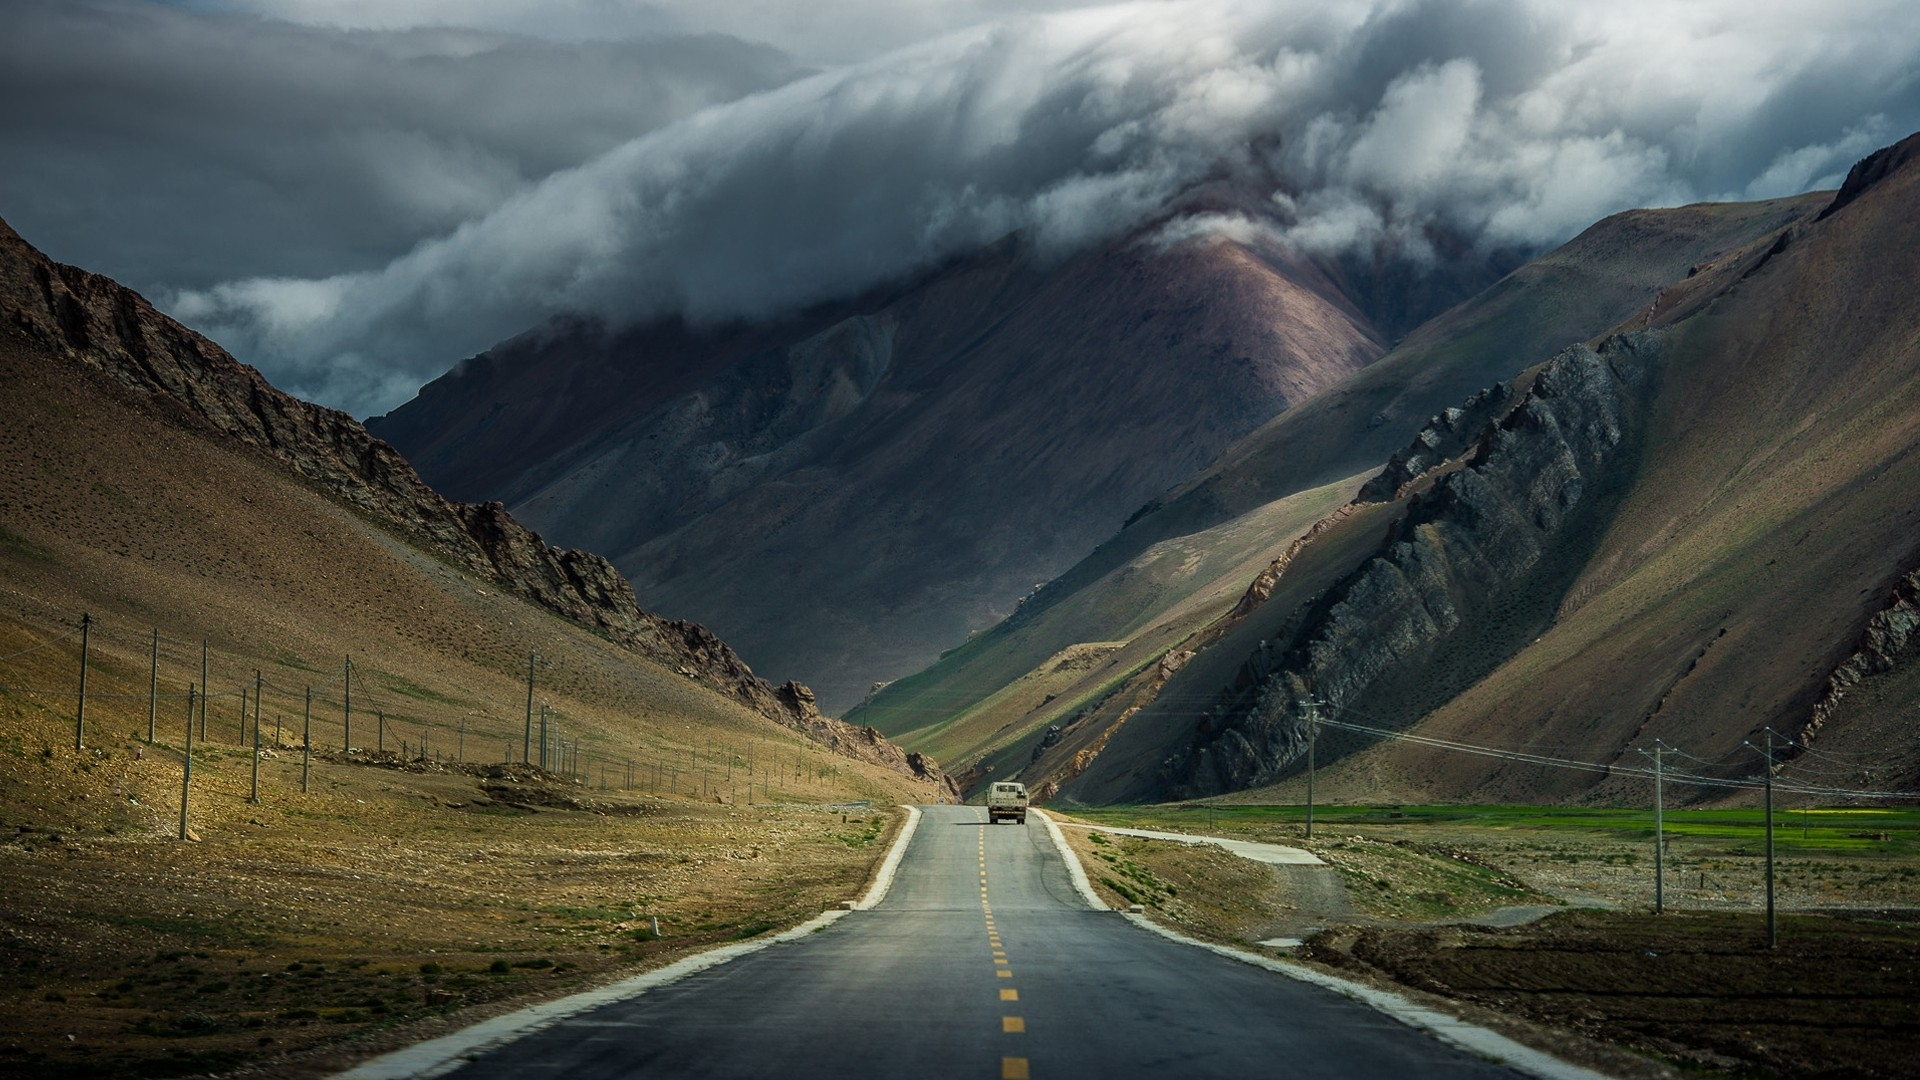 Wonderful Wallpaper Mountain Car - mountain-clouds-storm-road-car_wallpapers_41759_1920x1080  Pic_279589.jpg